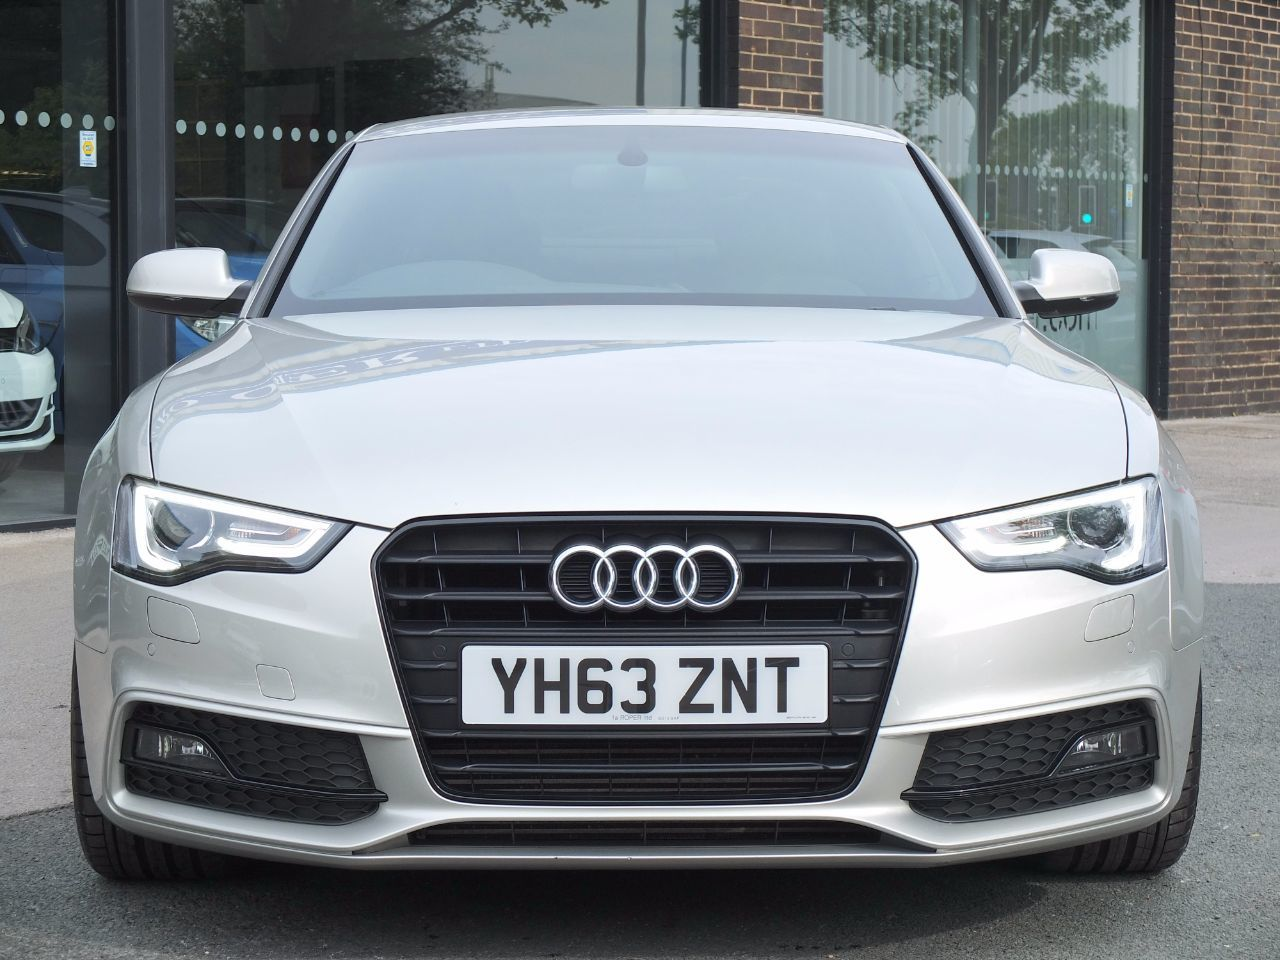 Audi A5 2.0 TDI 177 ps Black Edition Coupe Multitronic +++Spec Coupe Diesel Cuvee Silver Metallic